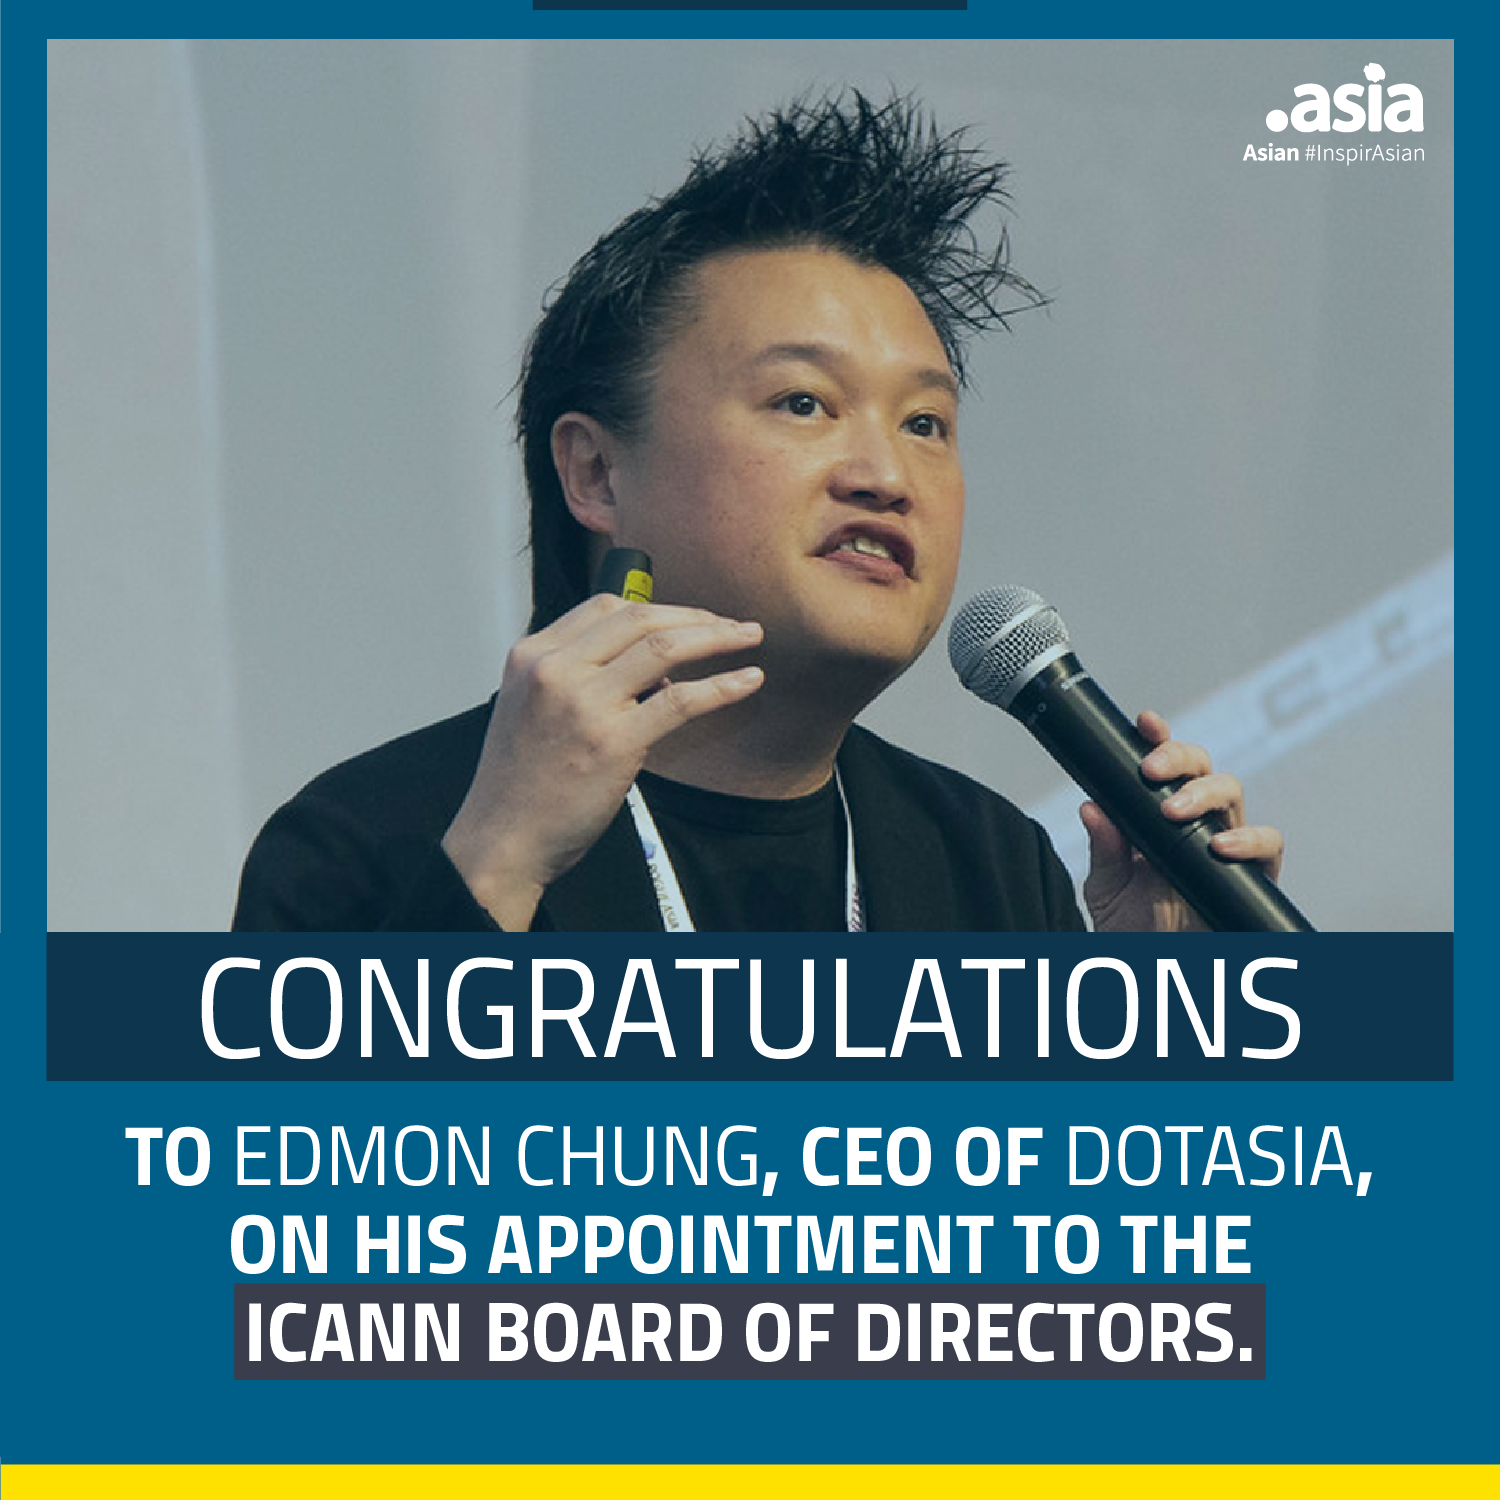 Edmon CHUNG appointment to the ICANN Board of Directors